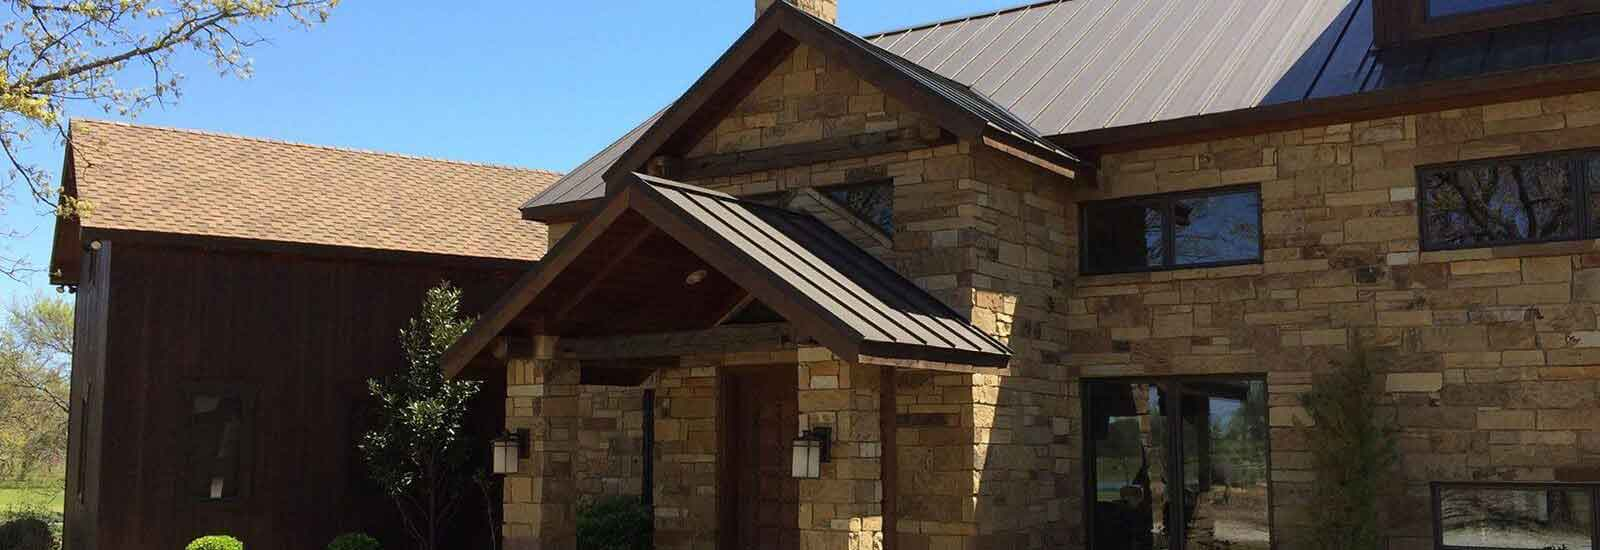 roofing system for home